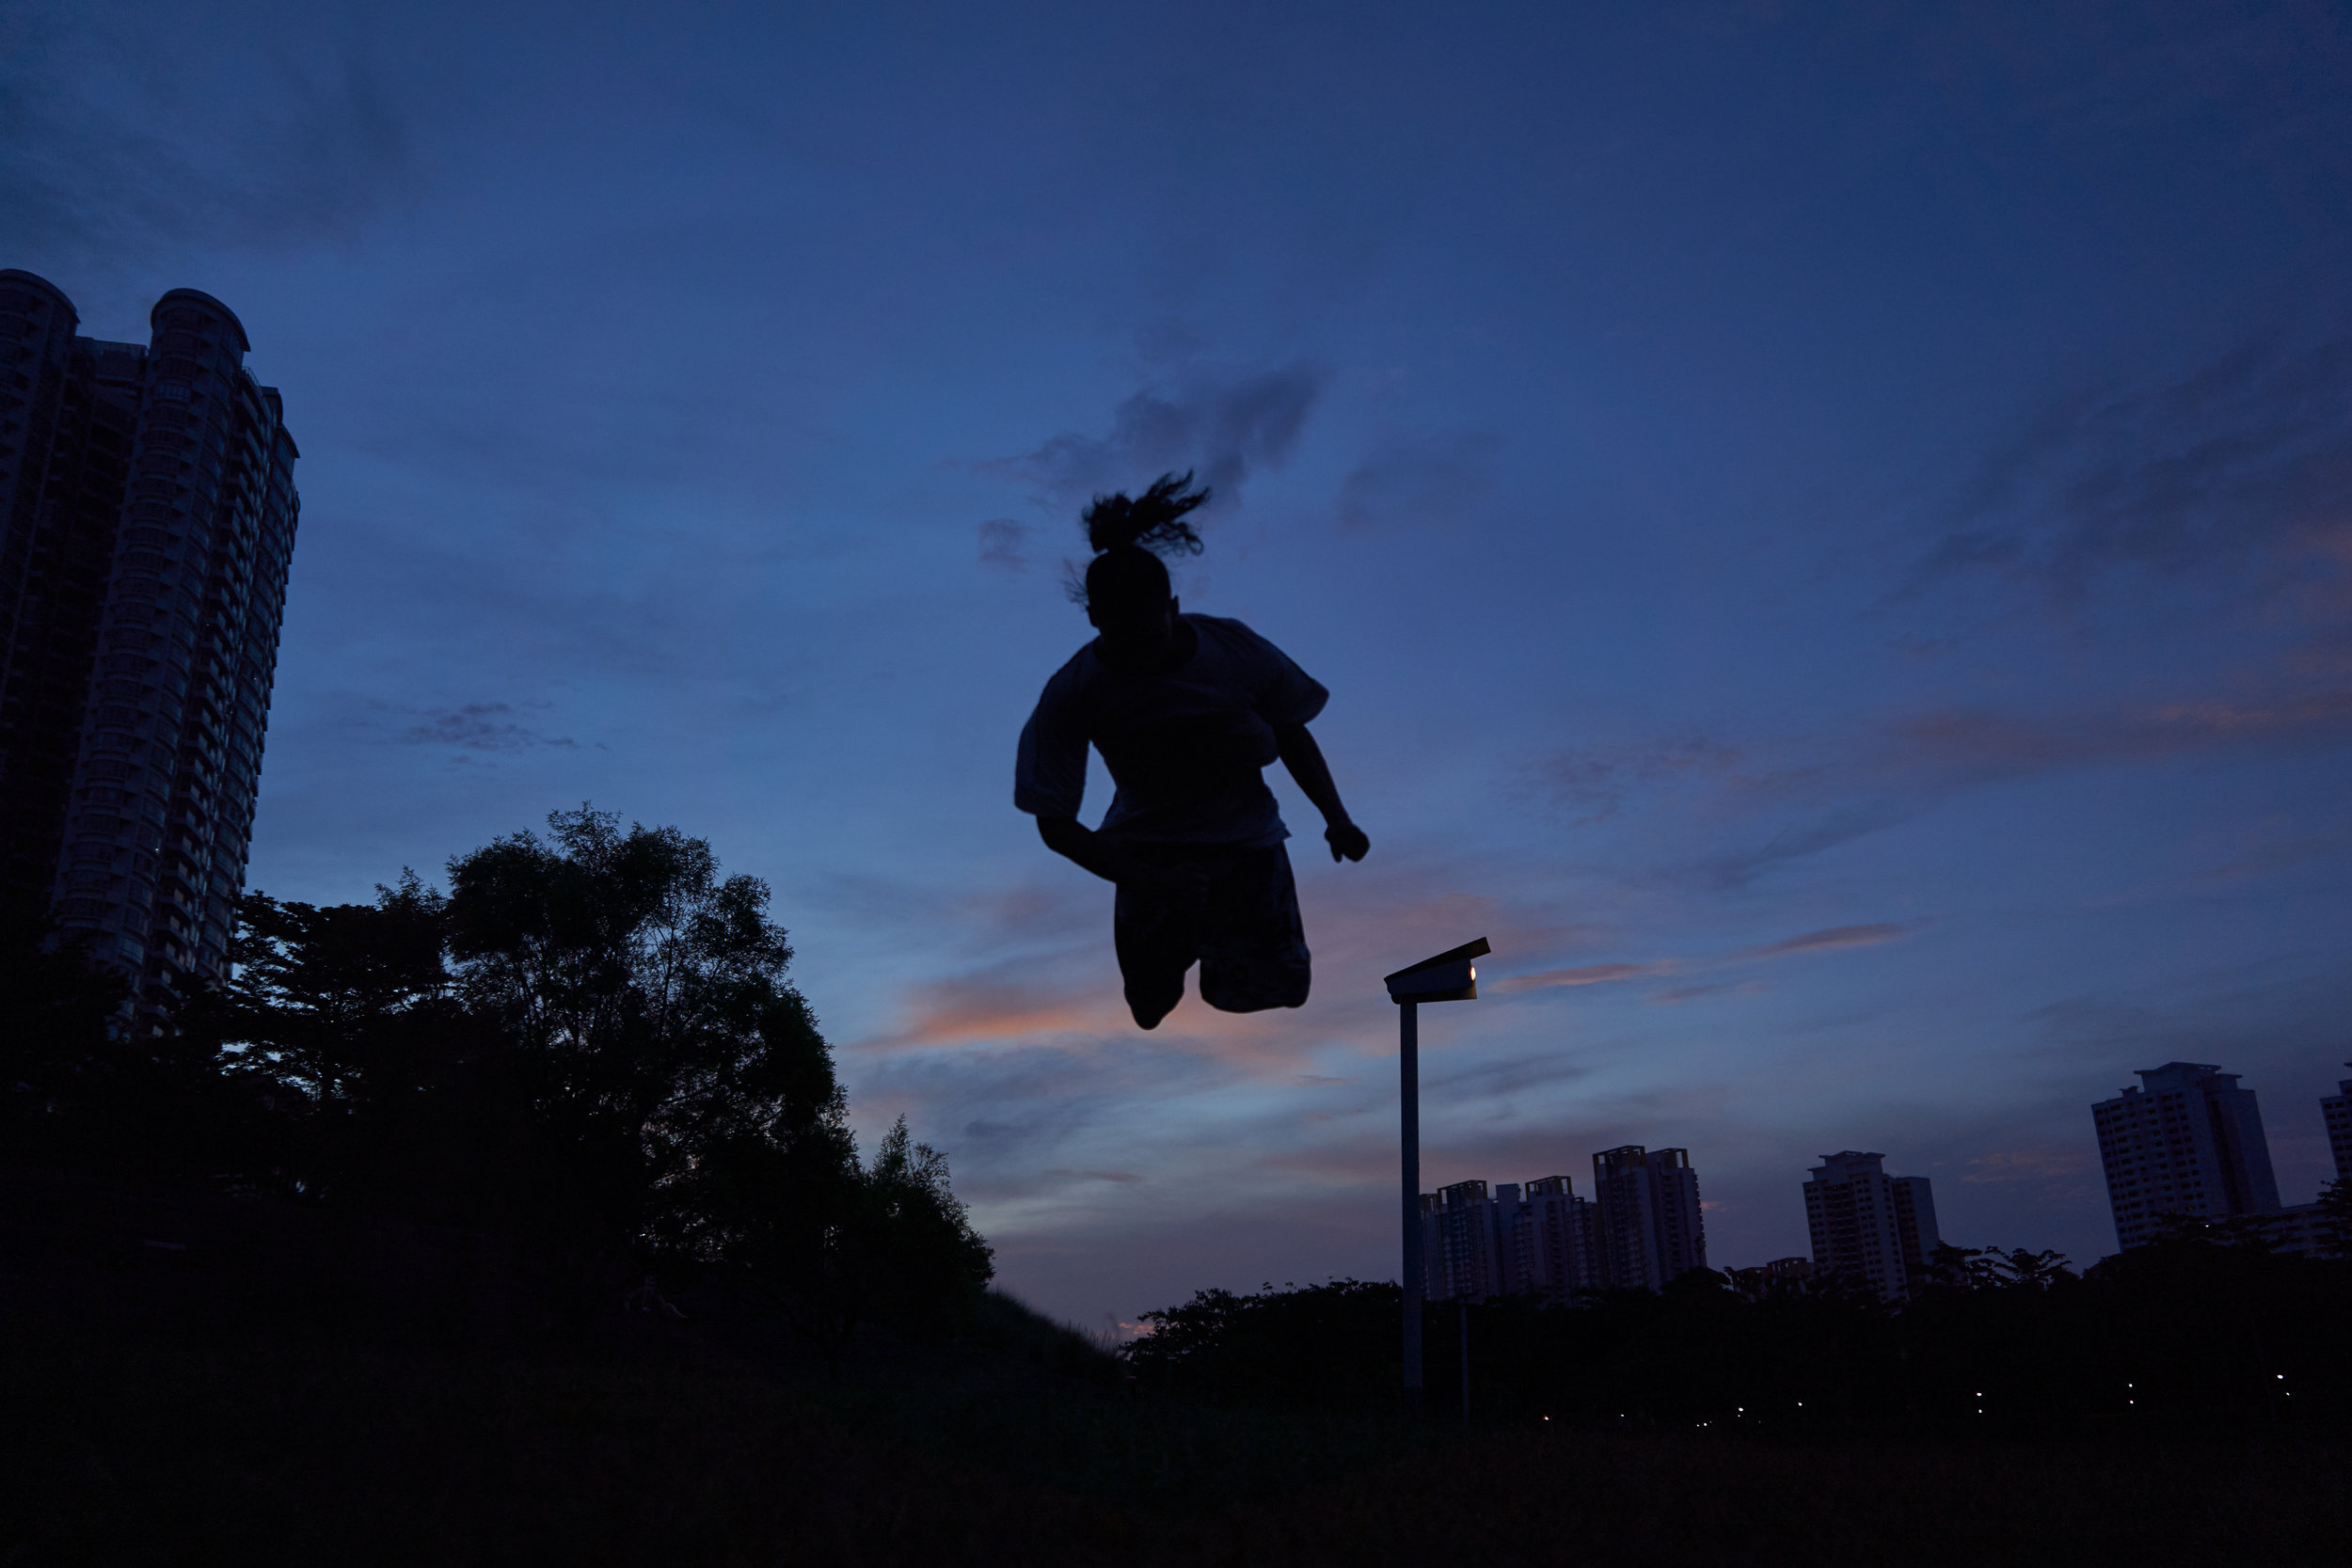 Taken in May 2019, at Bishan Park in Singapore, with a Sony A7III.